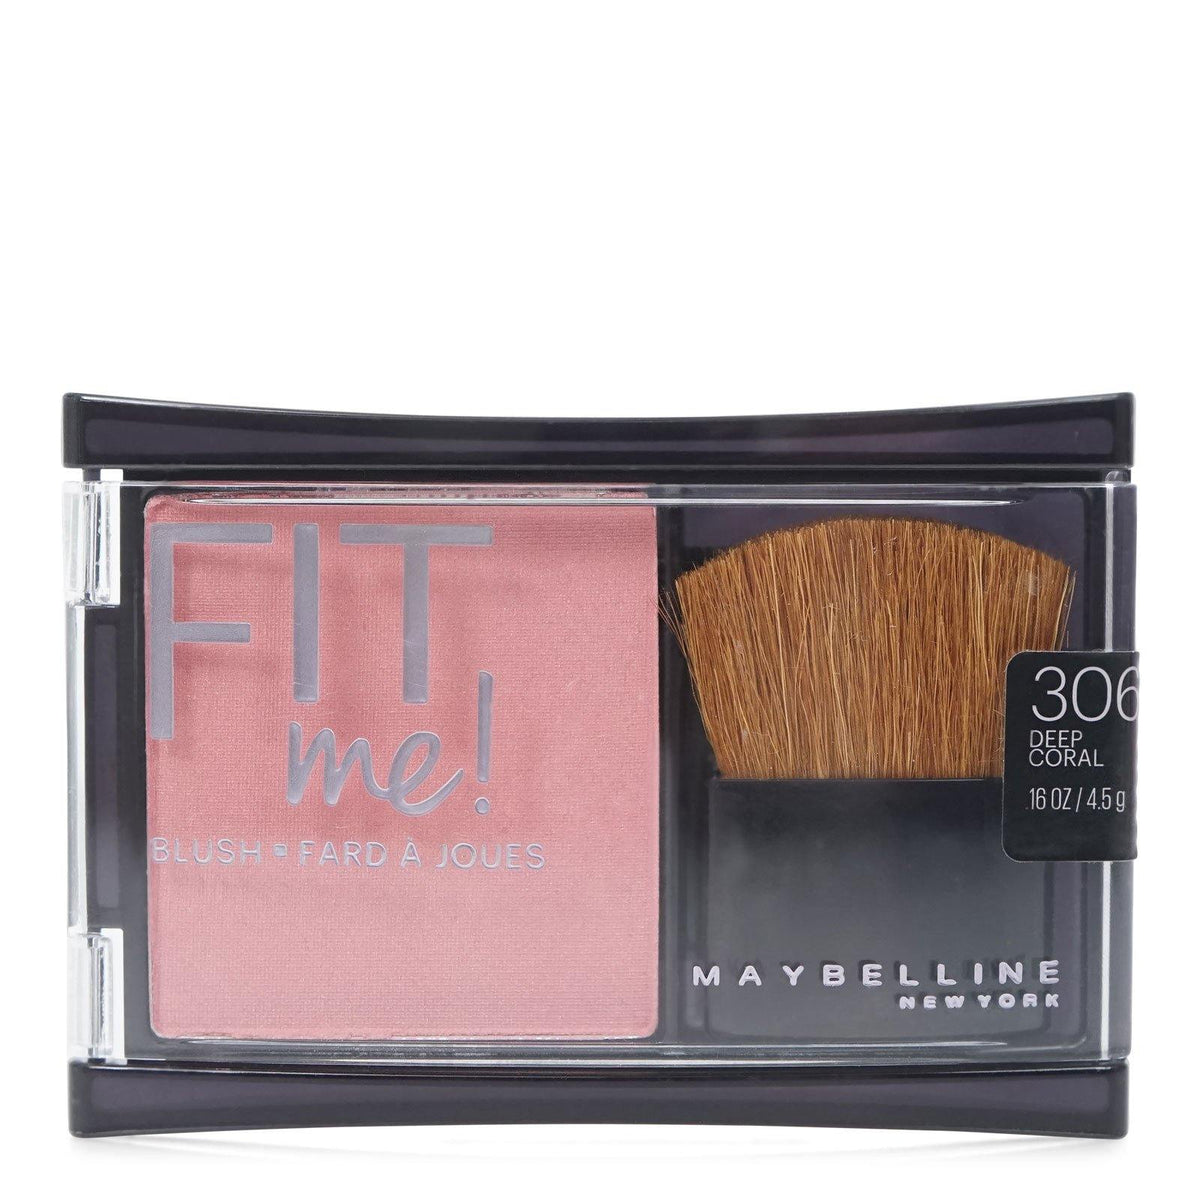 MAYBELLINE FIT ME BLUSH - DEEP CORAL (24/cs)